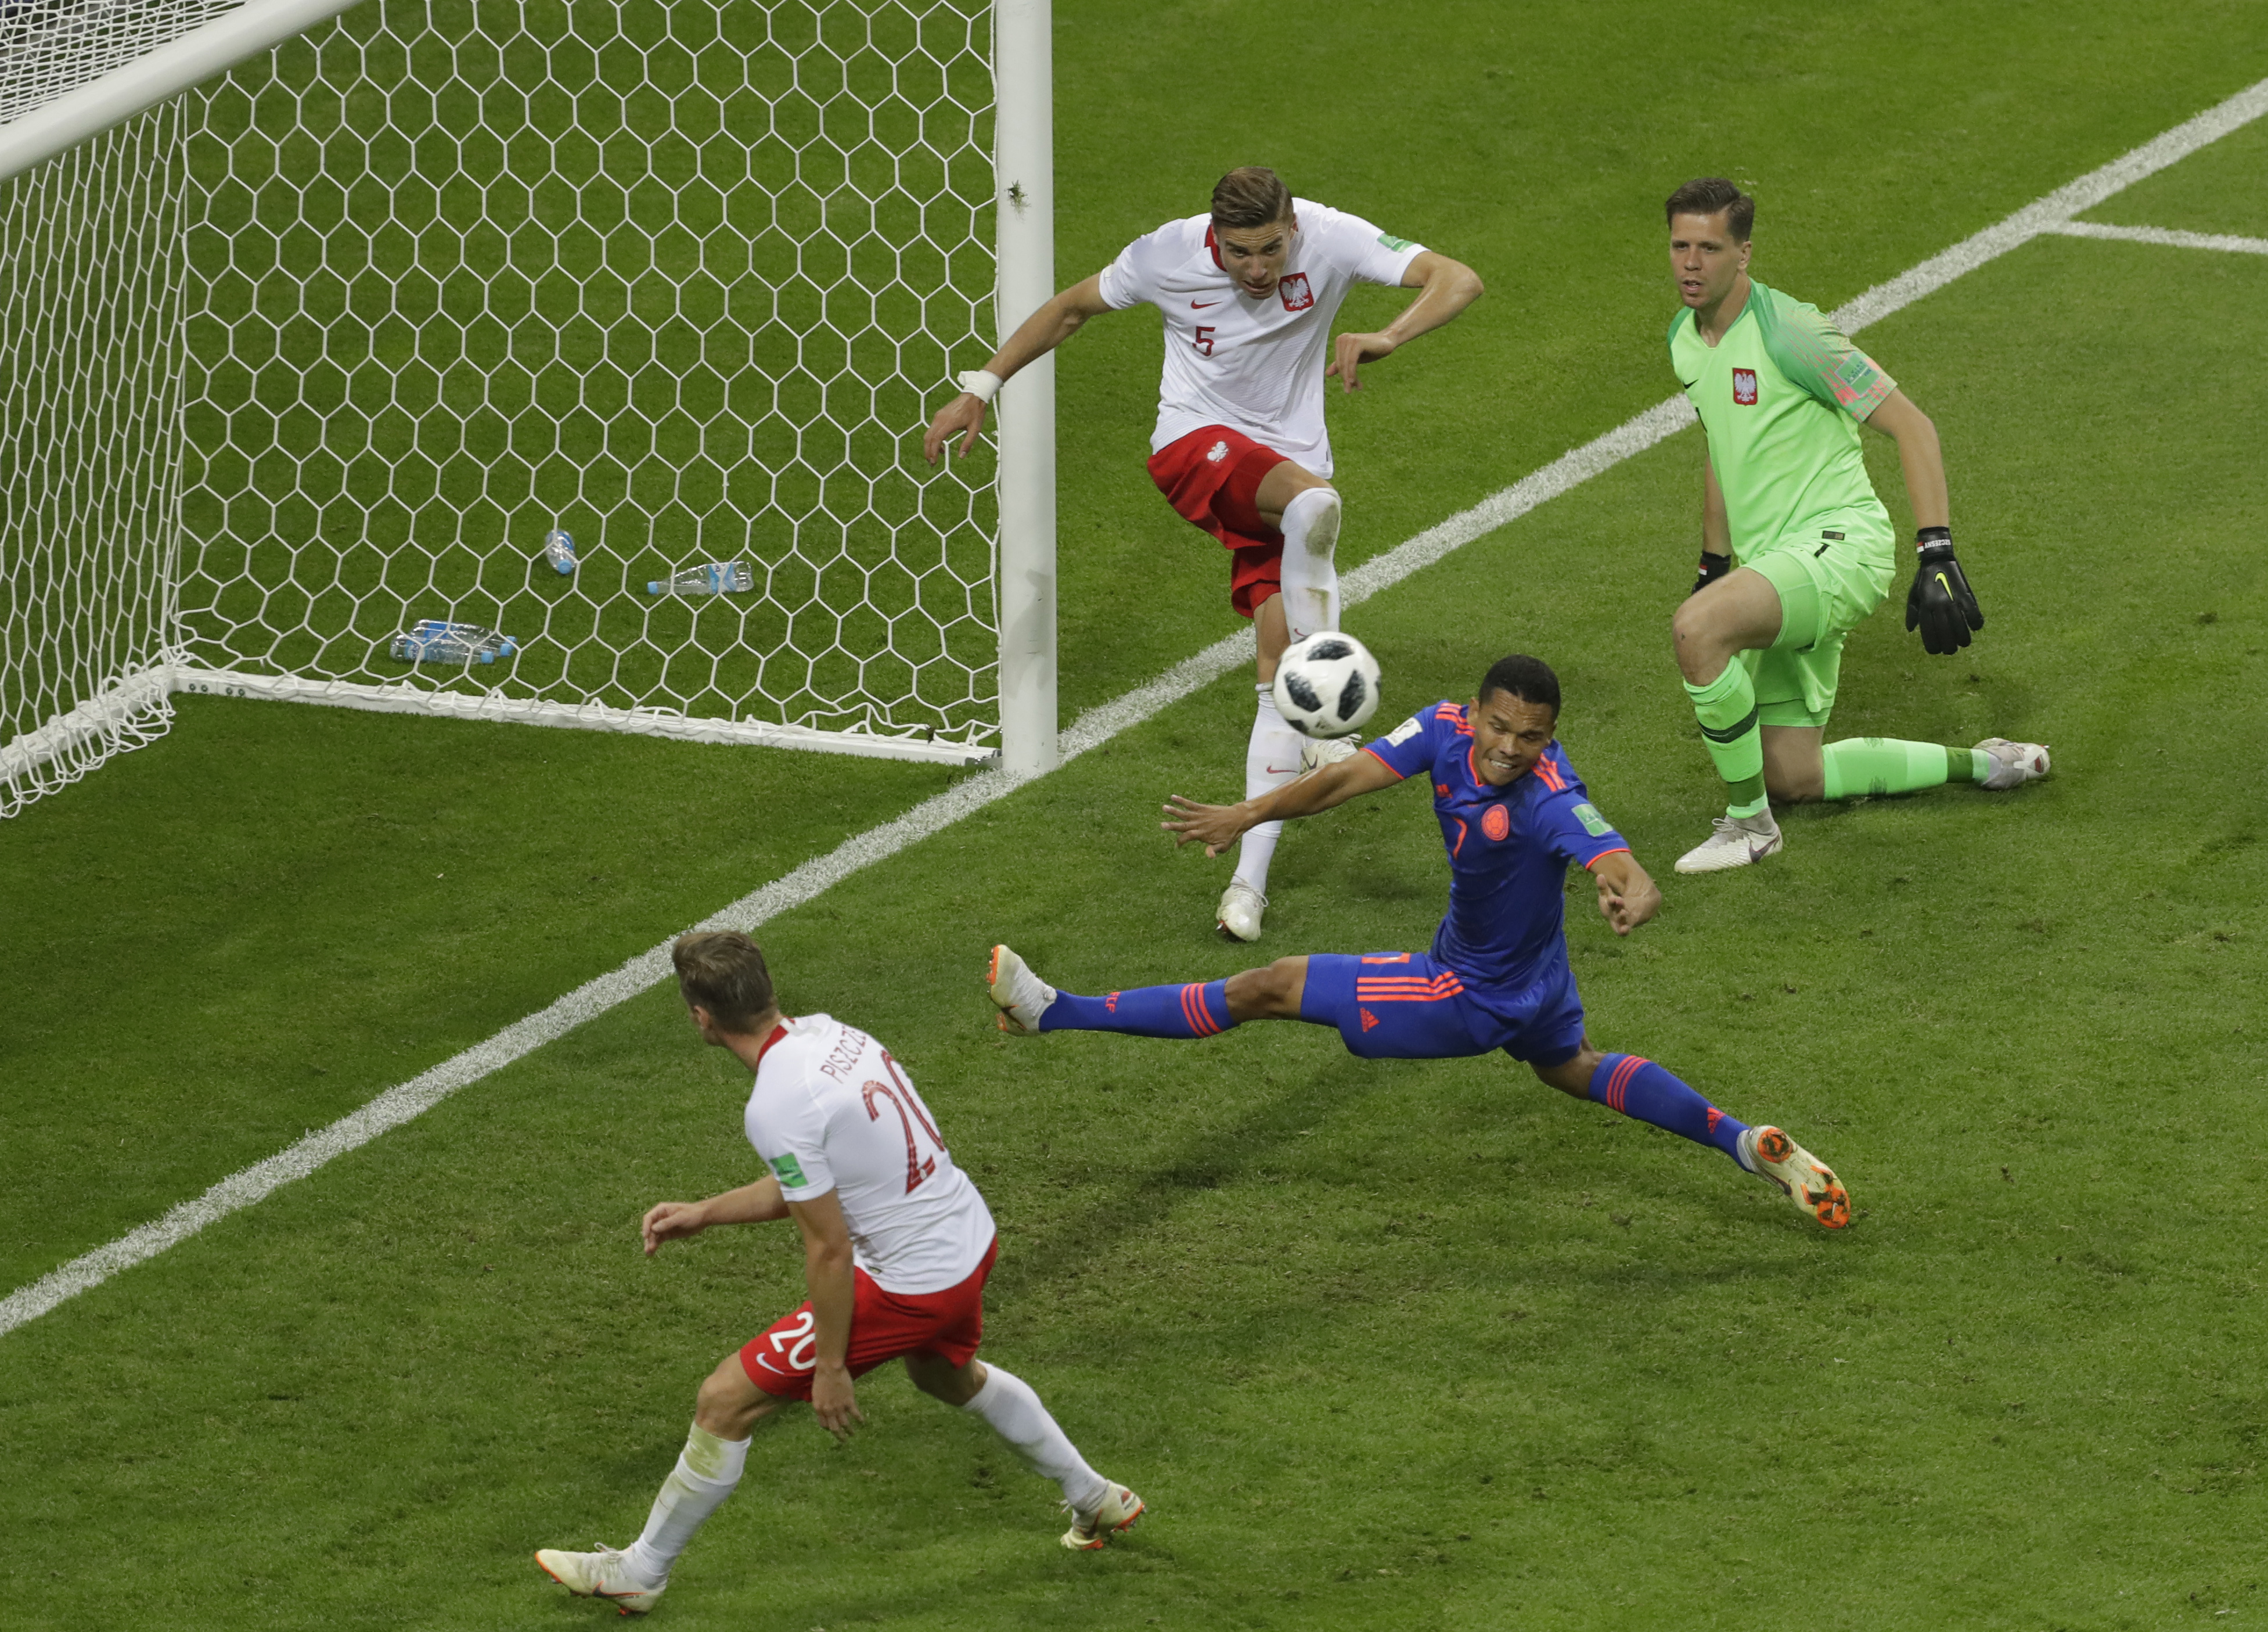 <div class='meta'><div class='origin-logo' data-origin='none'></div><span class='caption-text' data-credit='Sergei Grits/AP Photo'>Colombia's Carlos Bacca, center, tries unsuccessfully to score during the group H match between Poland and Colombia at the Kazan Arena in Kazan, Russia, Sunday, June 24, 2018.</span></div>